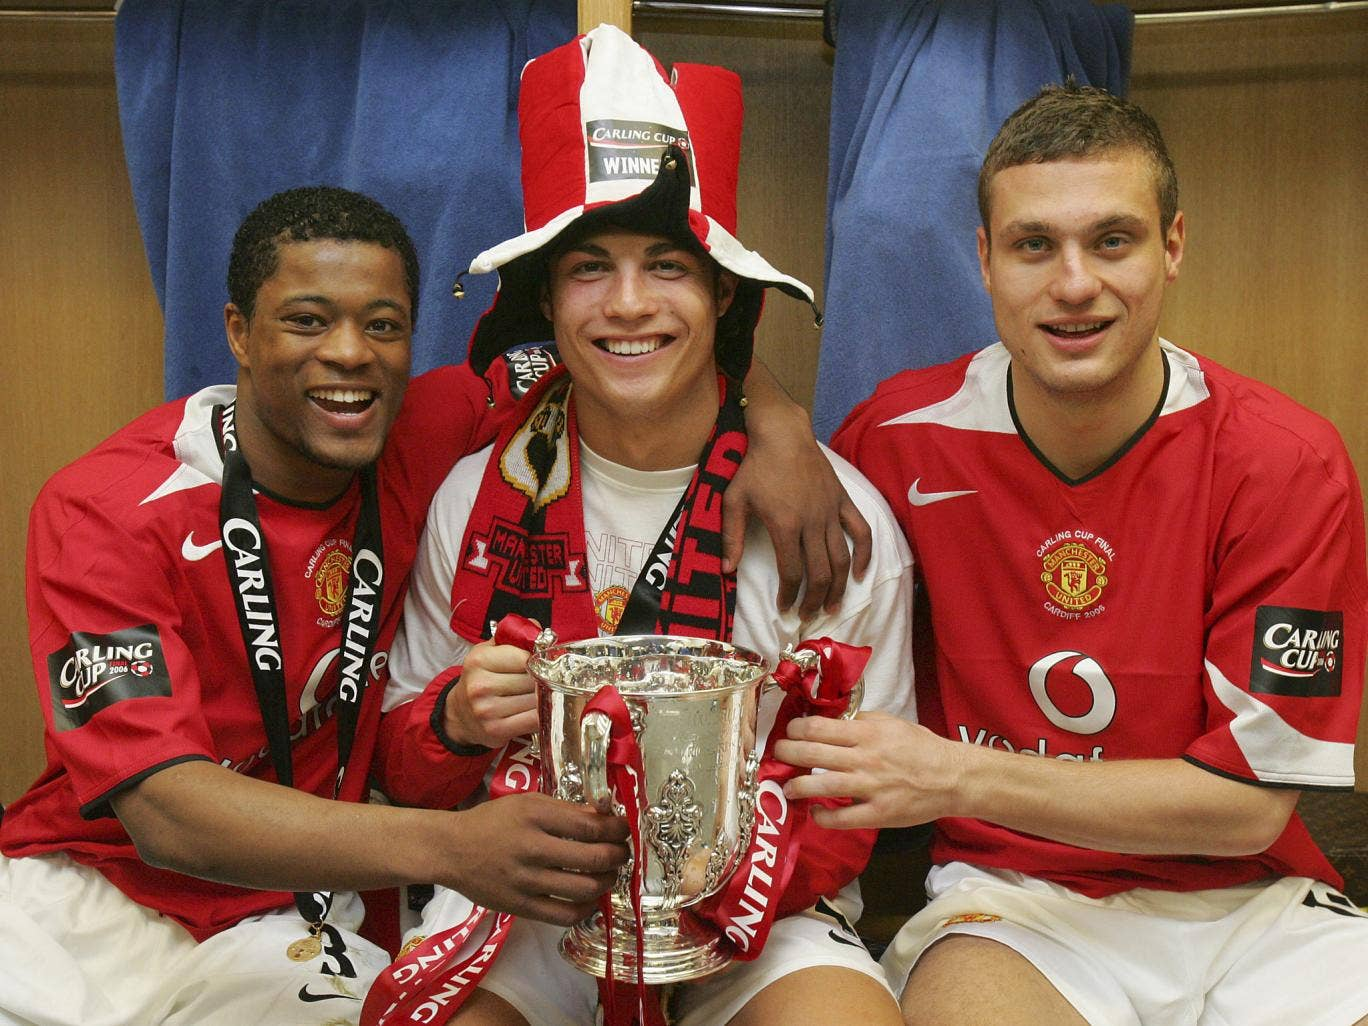 Patrice Evra, Cristiano Ronaldo and Nemanja Vidic of Manchester United pose with the Carling Cup trophy in the dressing room after their 2006 win